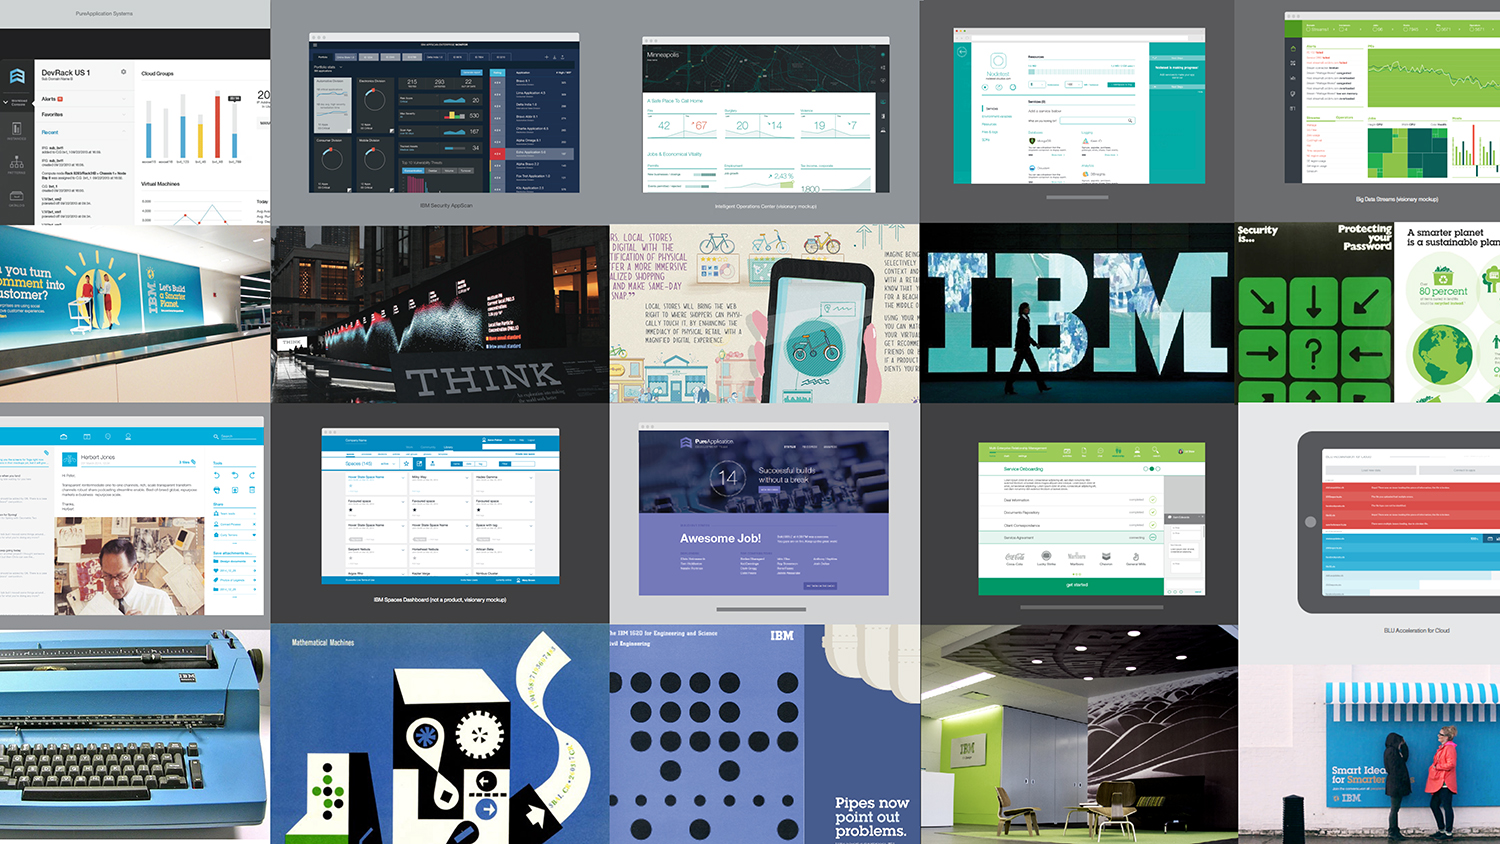 IBM Design Language SXSW_Page_18.jpg